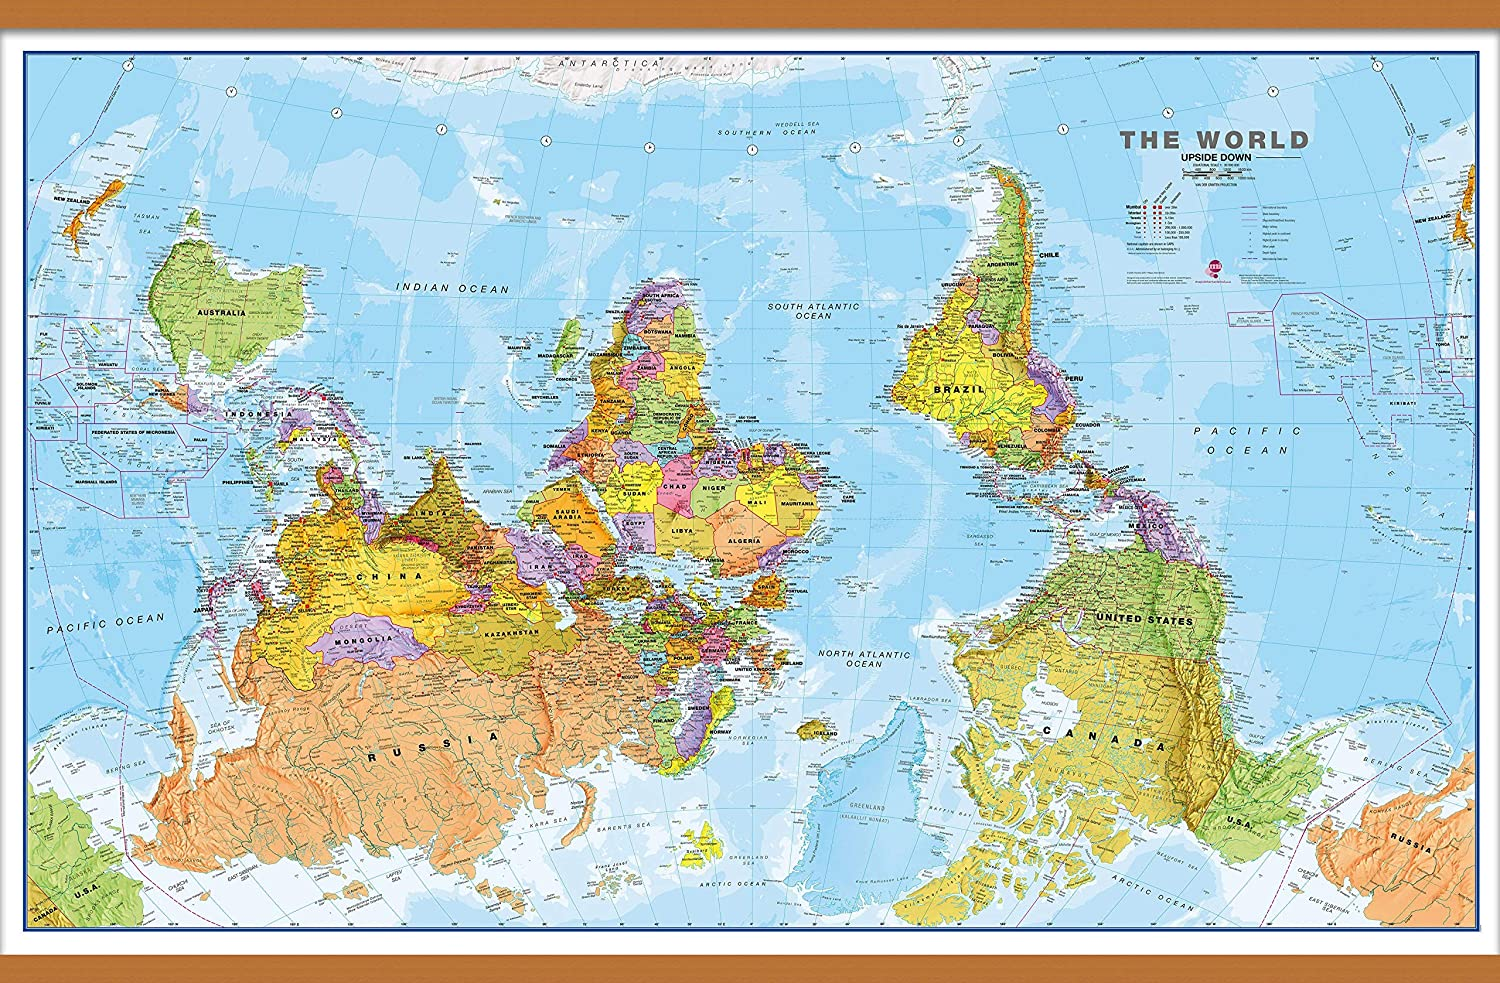 View Map Of The World.Amazon Com Maps International Large Upside Down Political World